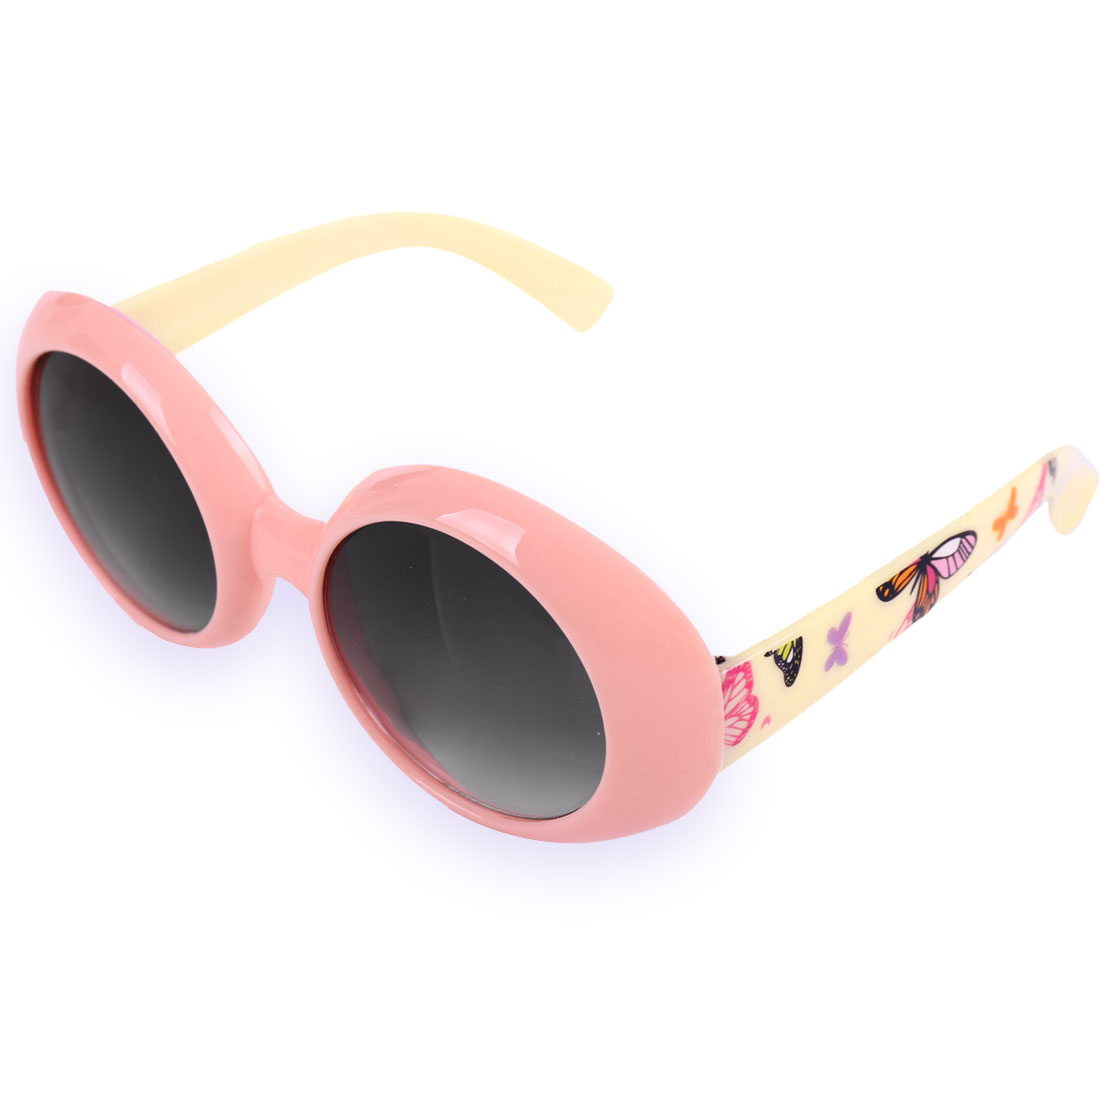 Children Plastic Full Frame Single Bridge Sunglasses Baby Pink Maize Color